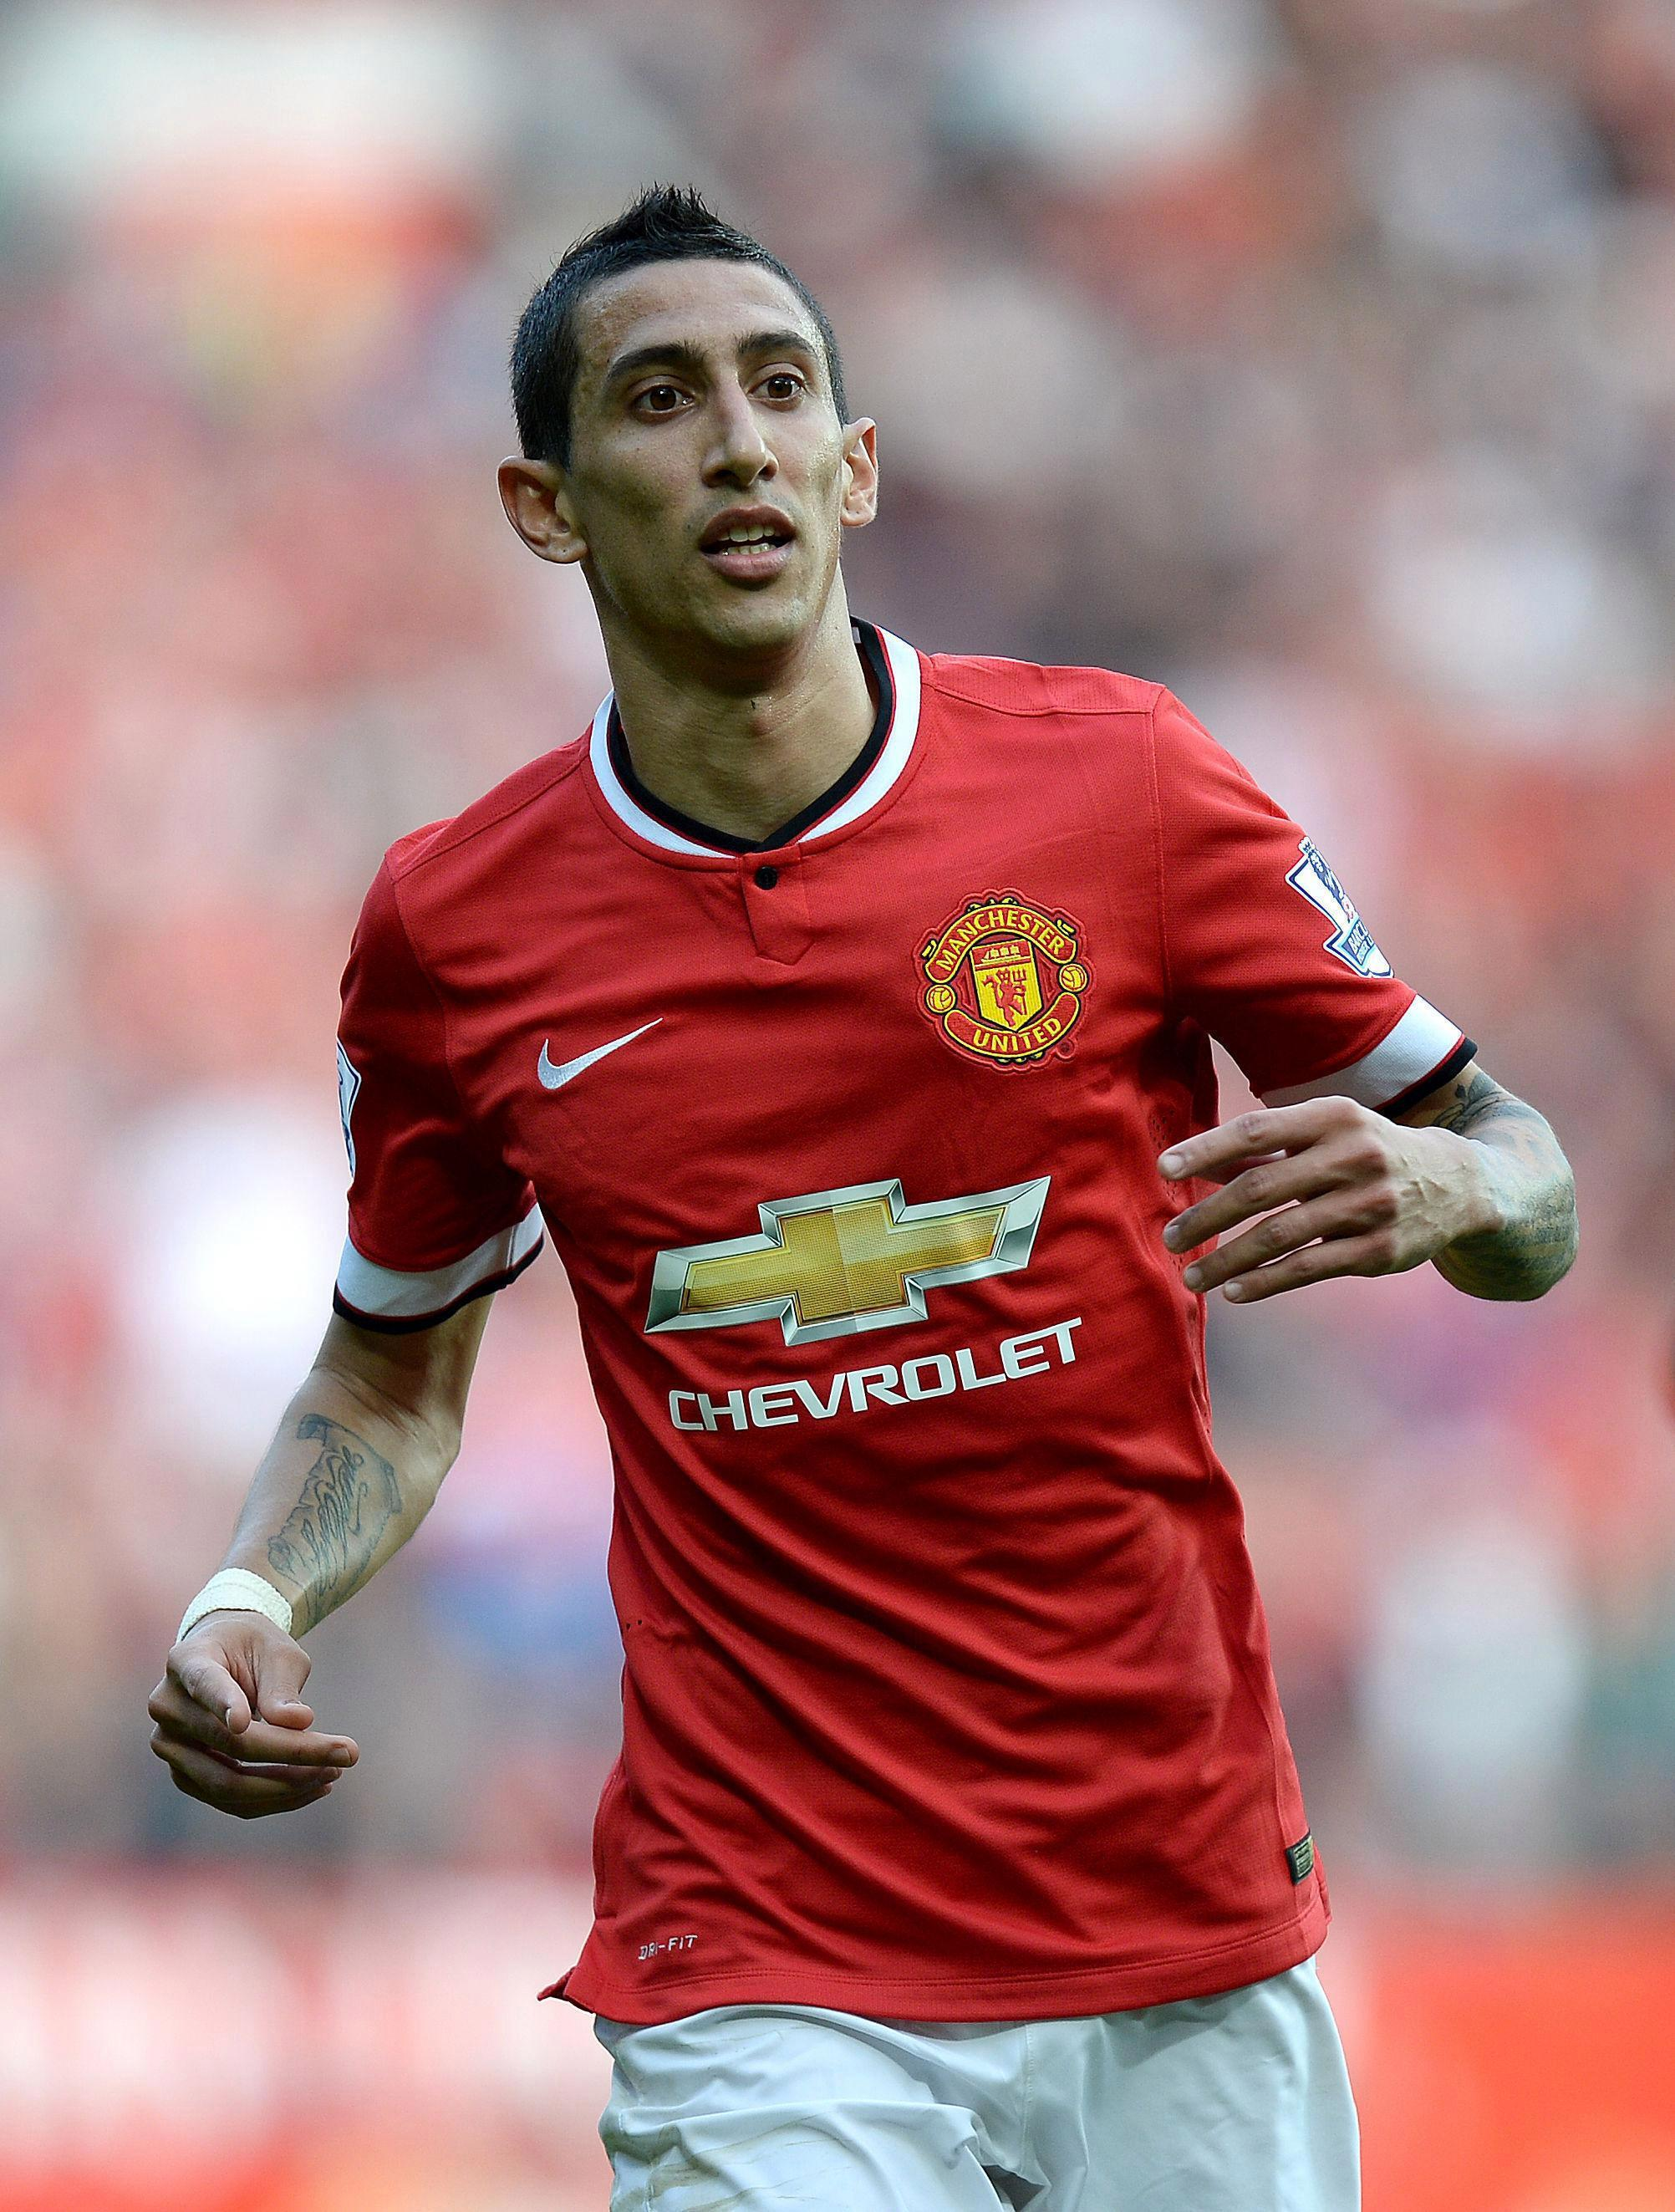 Angel Di Maria proved a massive flop at Old Trafford under Louis van Gaal after joining United for £59.7m before being sold a year later